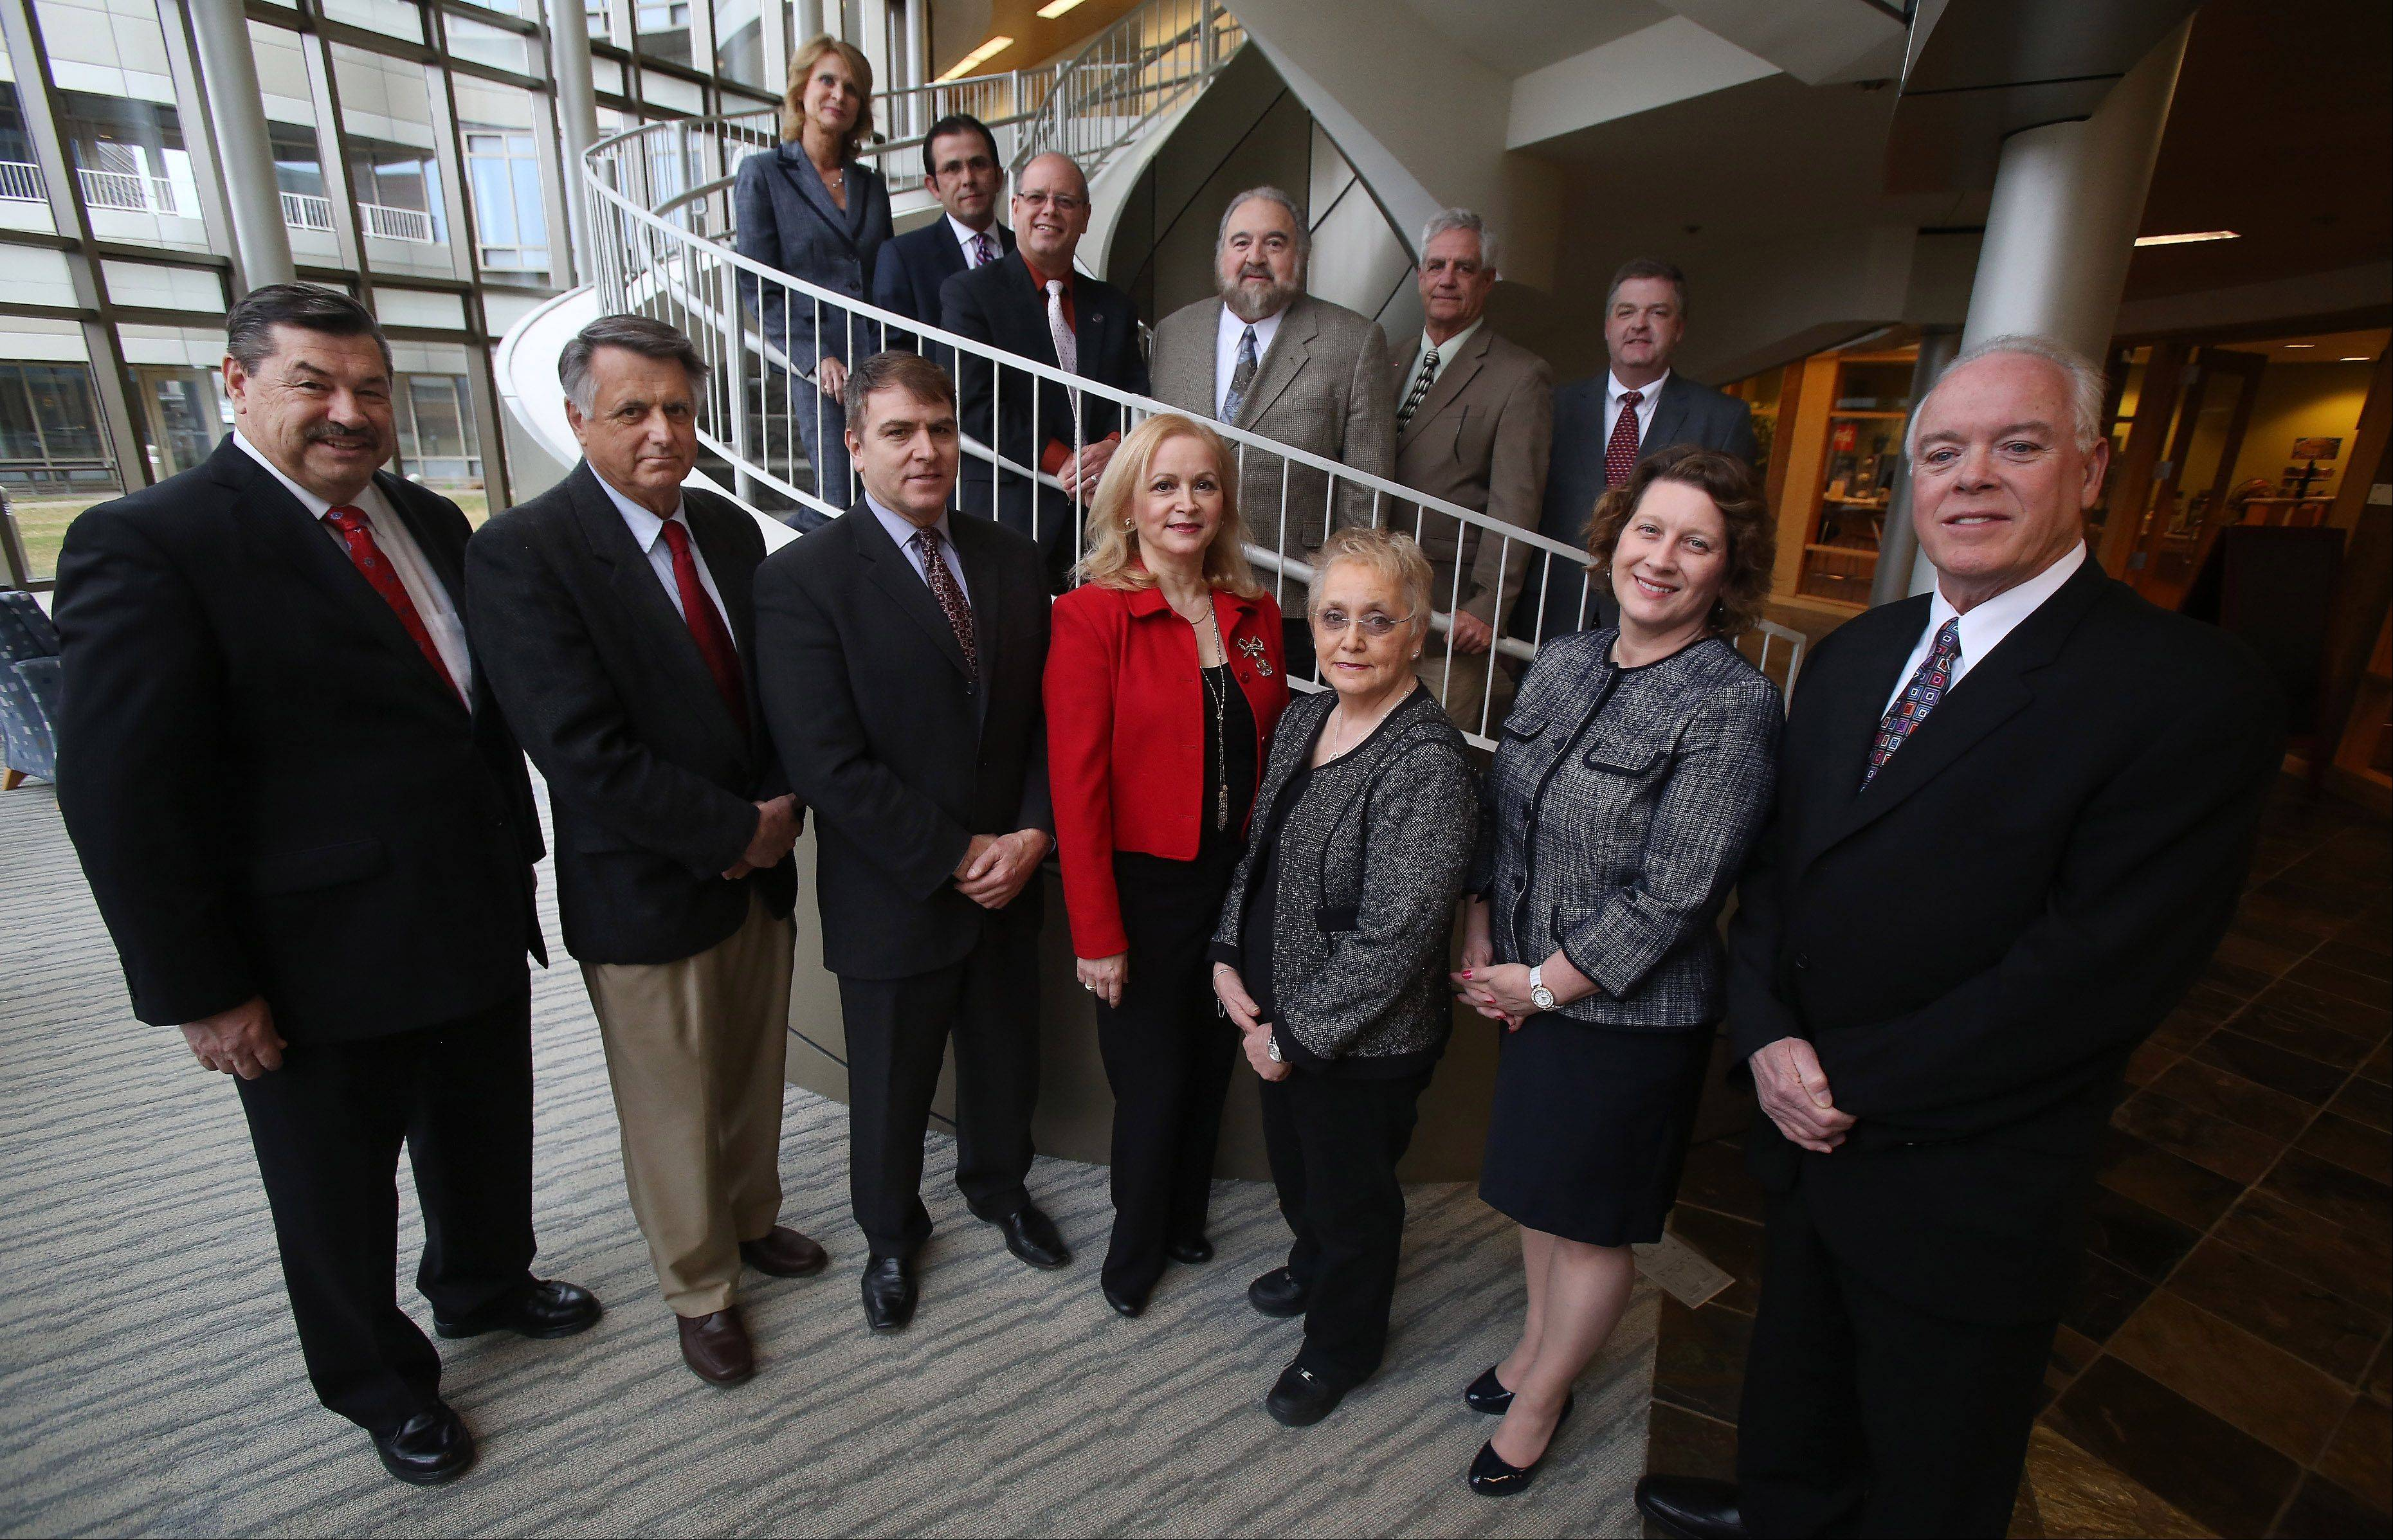 Lake County mayoral winners gather at the University Center in Grayslake a day after elections in area towns. Front left: Bernard Wysocki, Green Oaks; Charles Amrich, Island Lake; Lawrence Hanson, Antioch; Nandia Black, Kildeer; Linda Lucassen, Round Lake Park; Angie Underwood, Long Grove; and Tom Poynton, Lake Zurich. Back left: Kristina Kovarik, Gurnee; Joe Mancino, Hawthorn Woods; Rich Hill, Round Lake Beach; Frank Loffredo, Lake Villa; Donald Schmit, Fox Lake; and Steve Lentz, Mundelein.